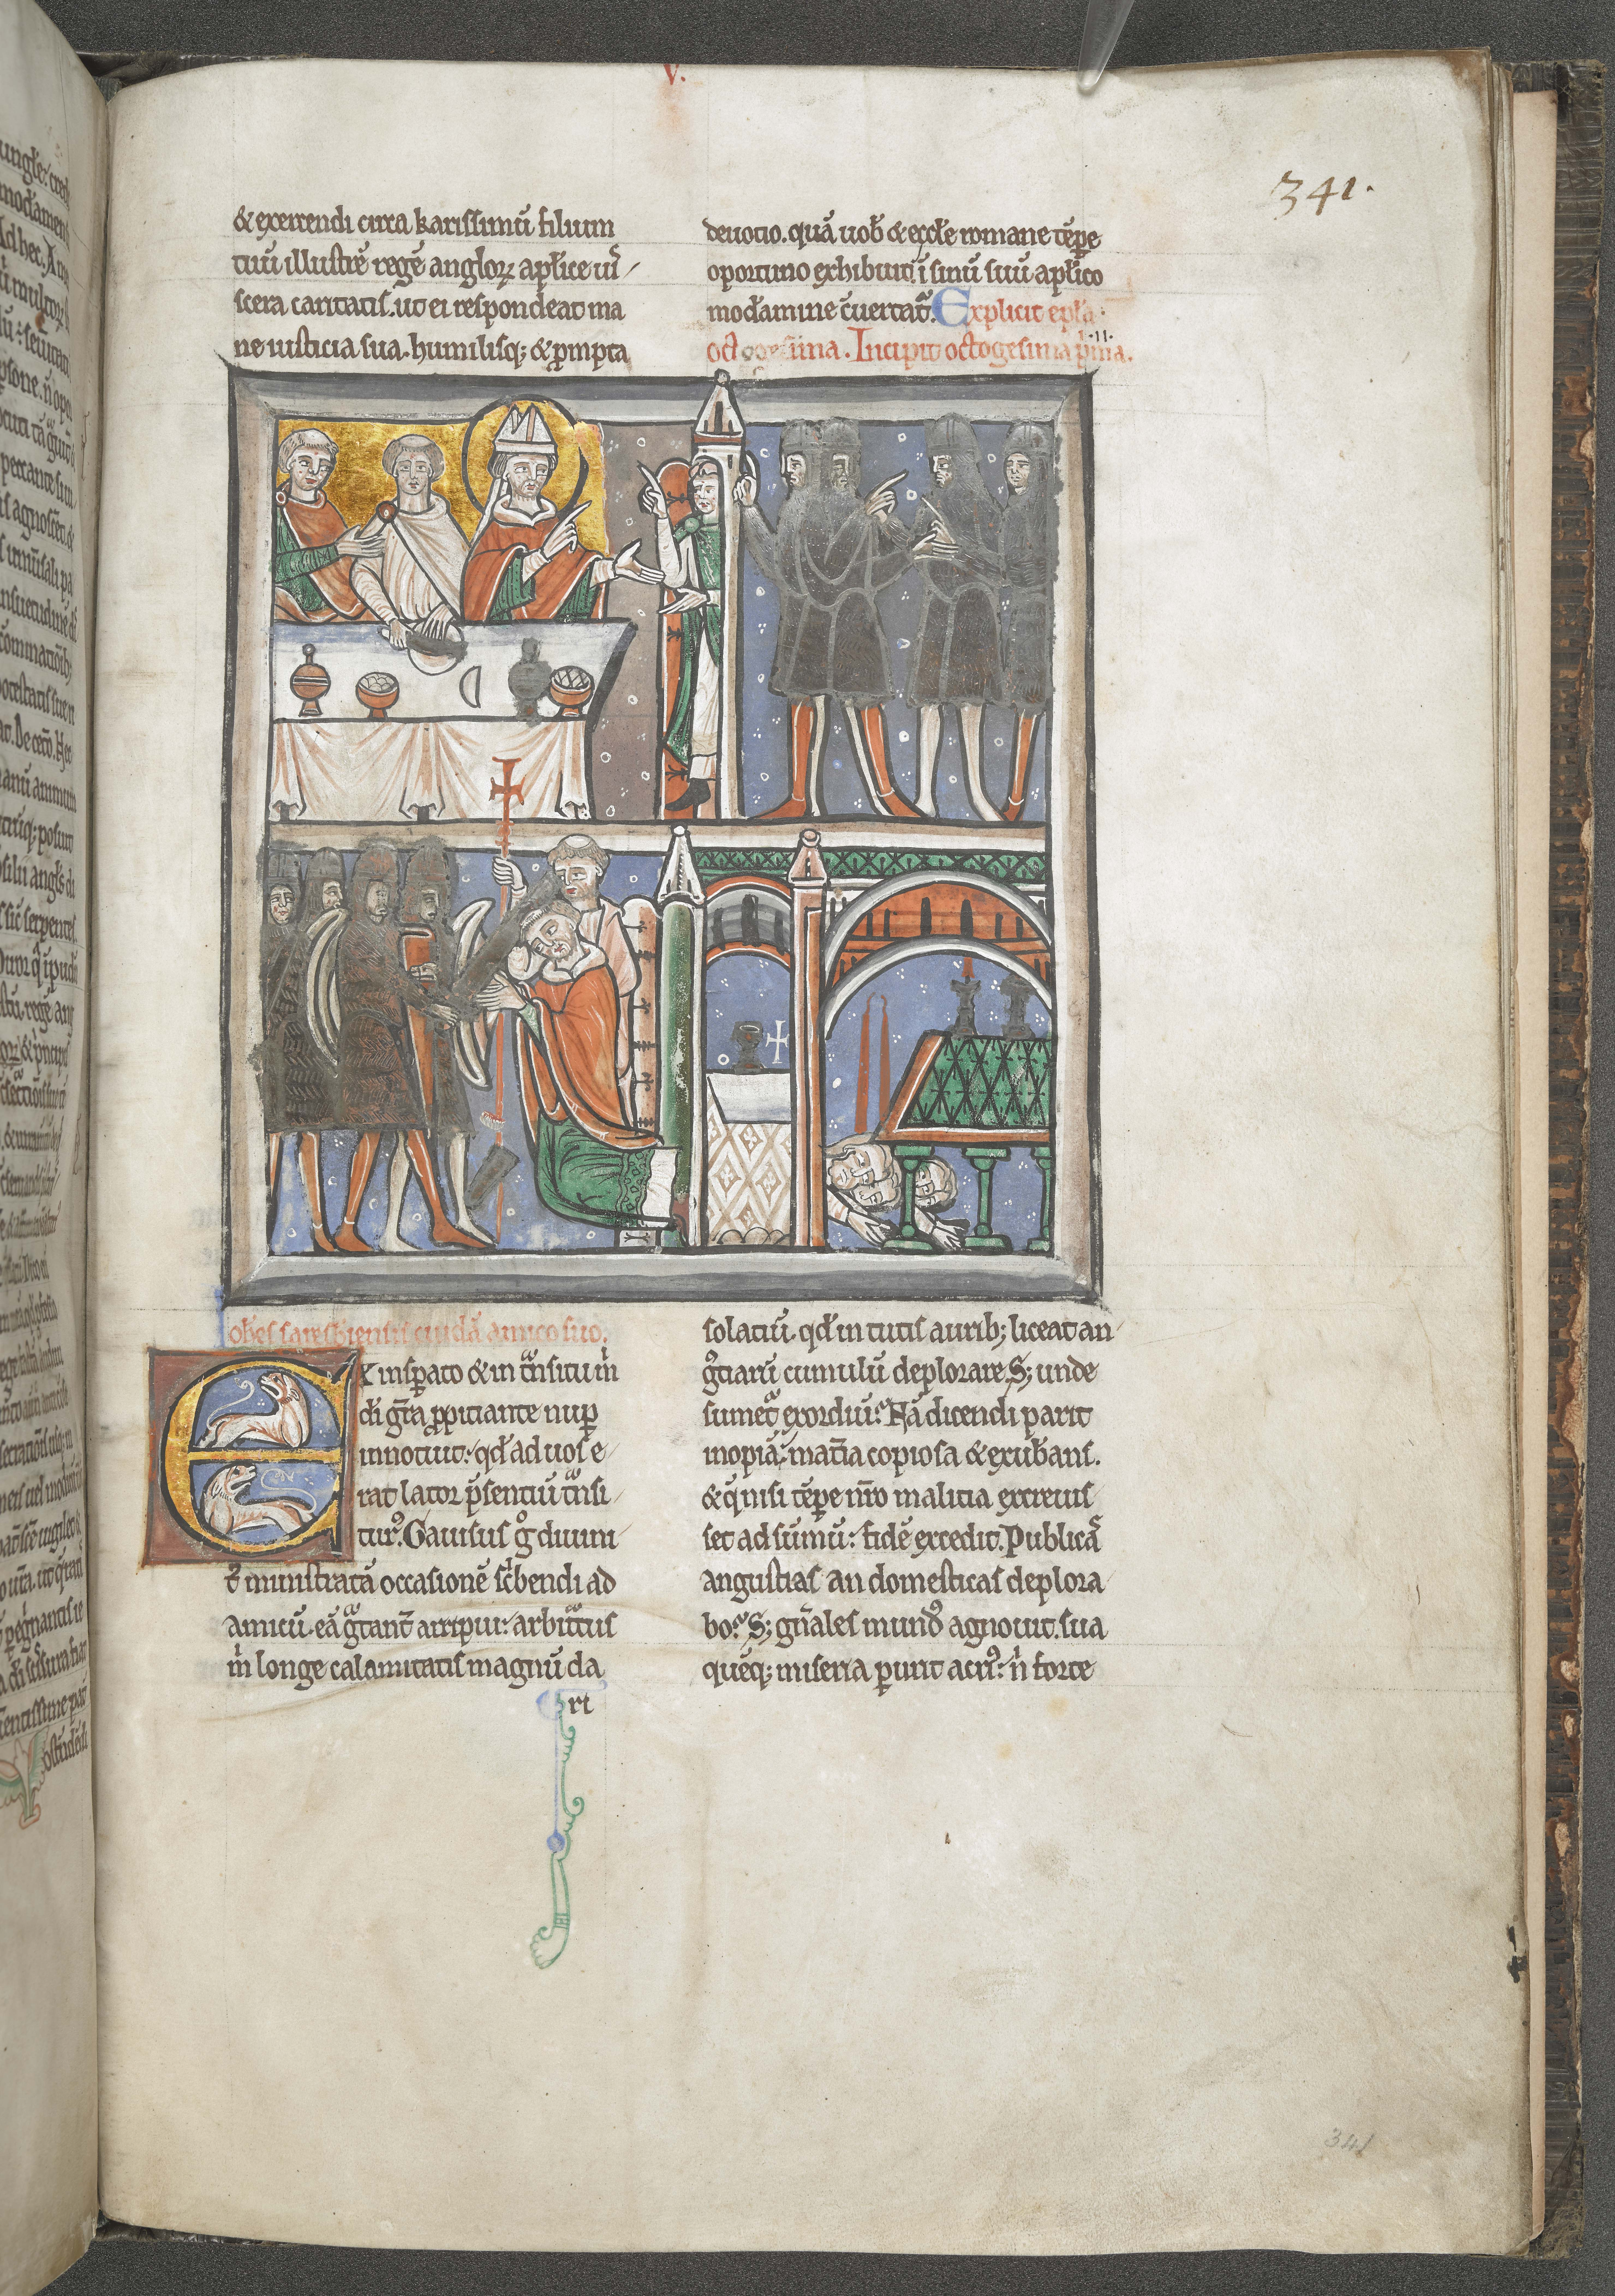 Collection of St Thomas Becket's letters including the earliest depiction of Becket's martyrdom